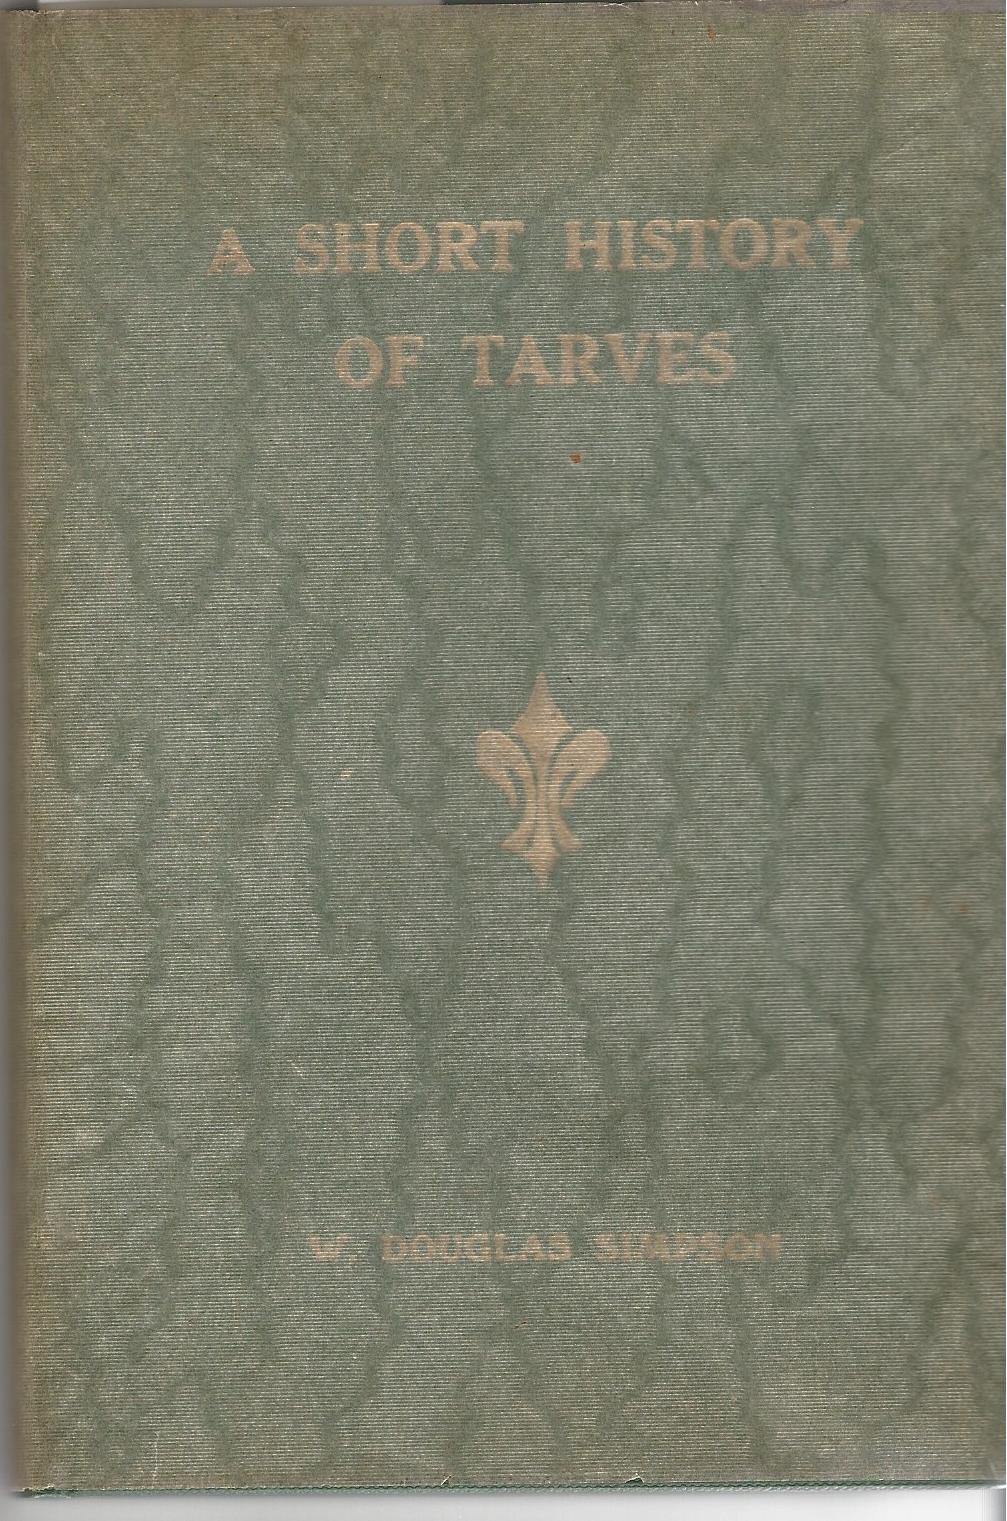 Image for A Short History of Tarves.